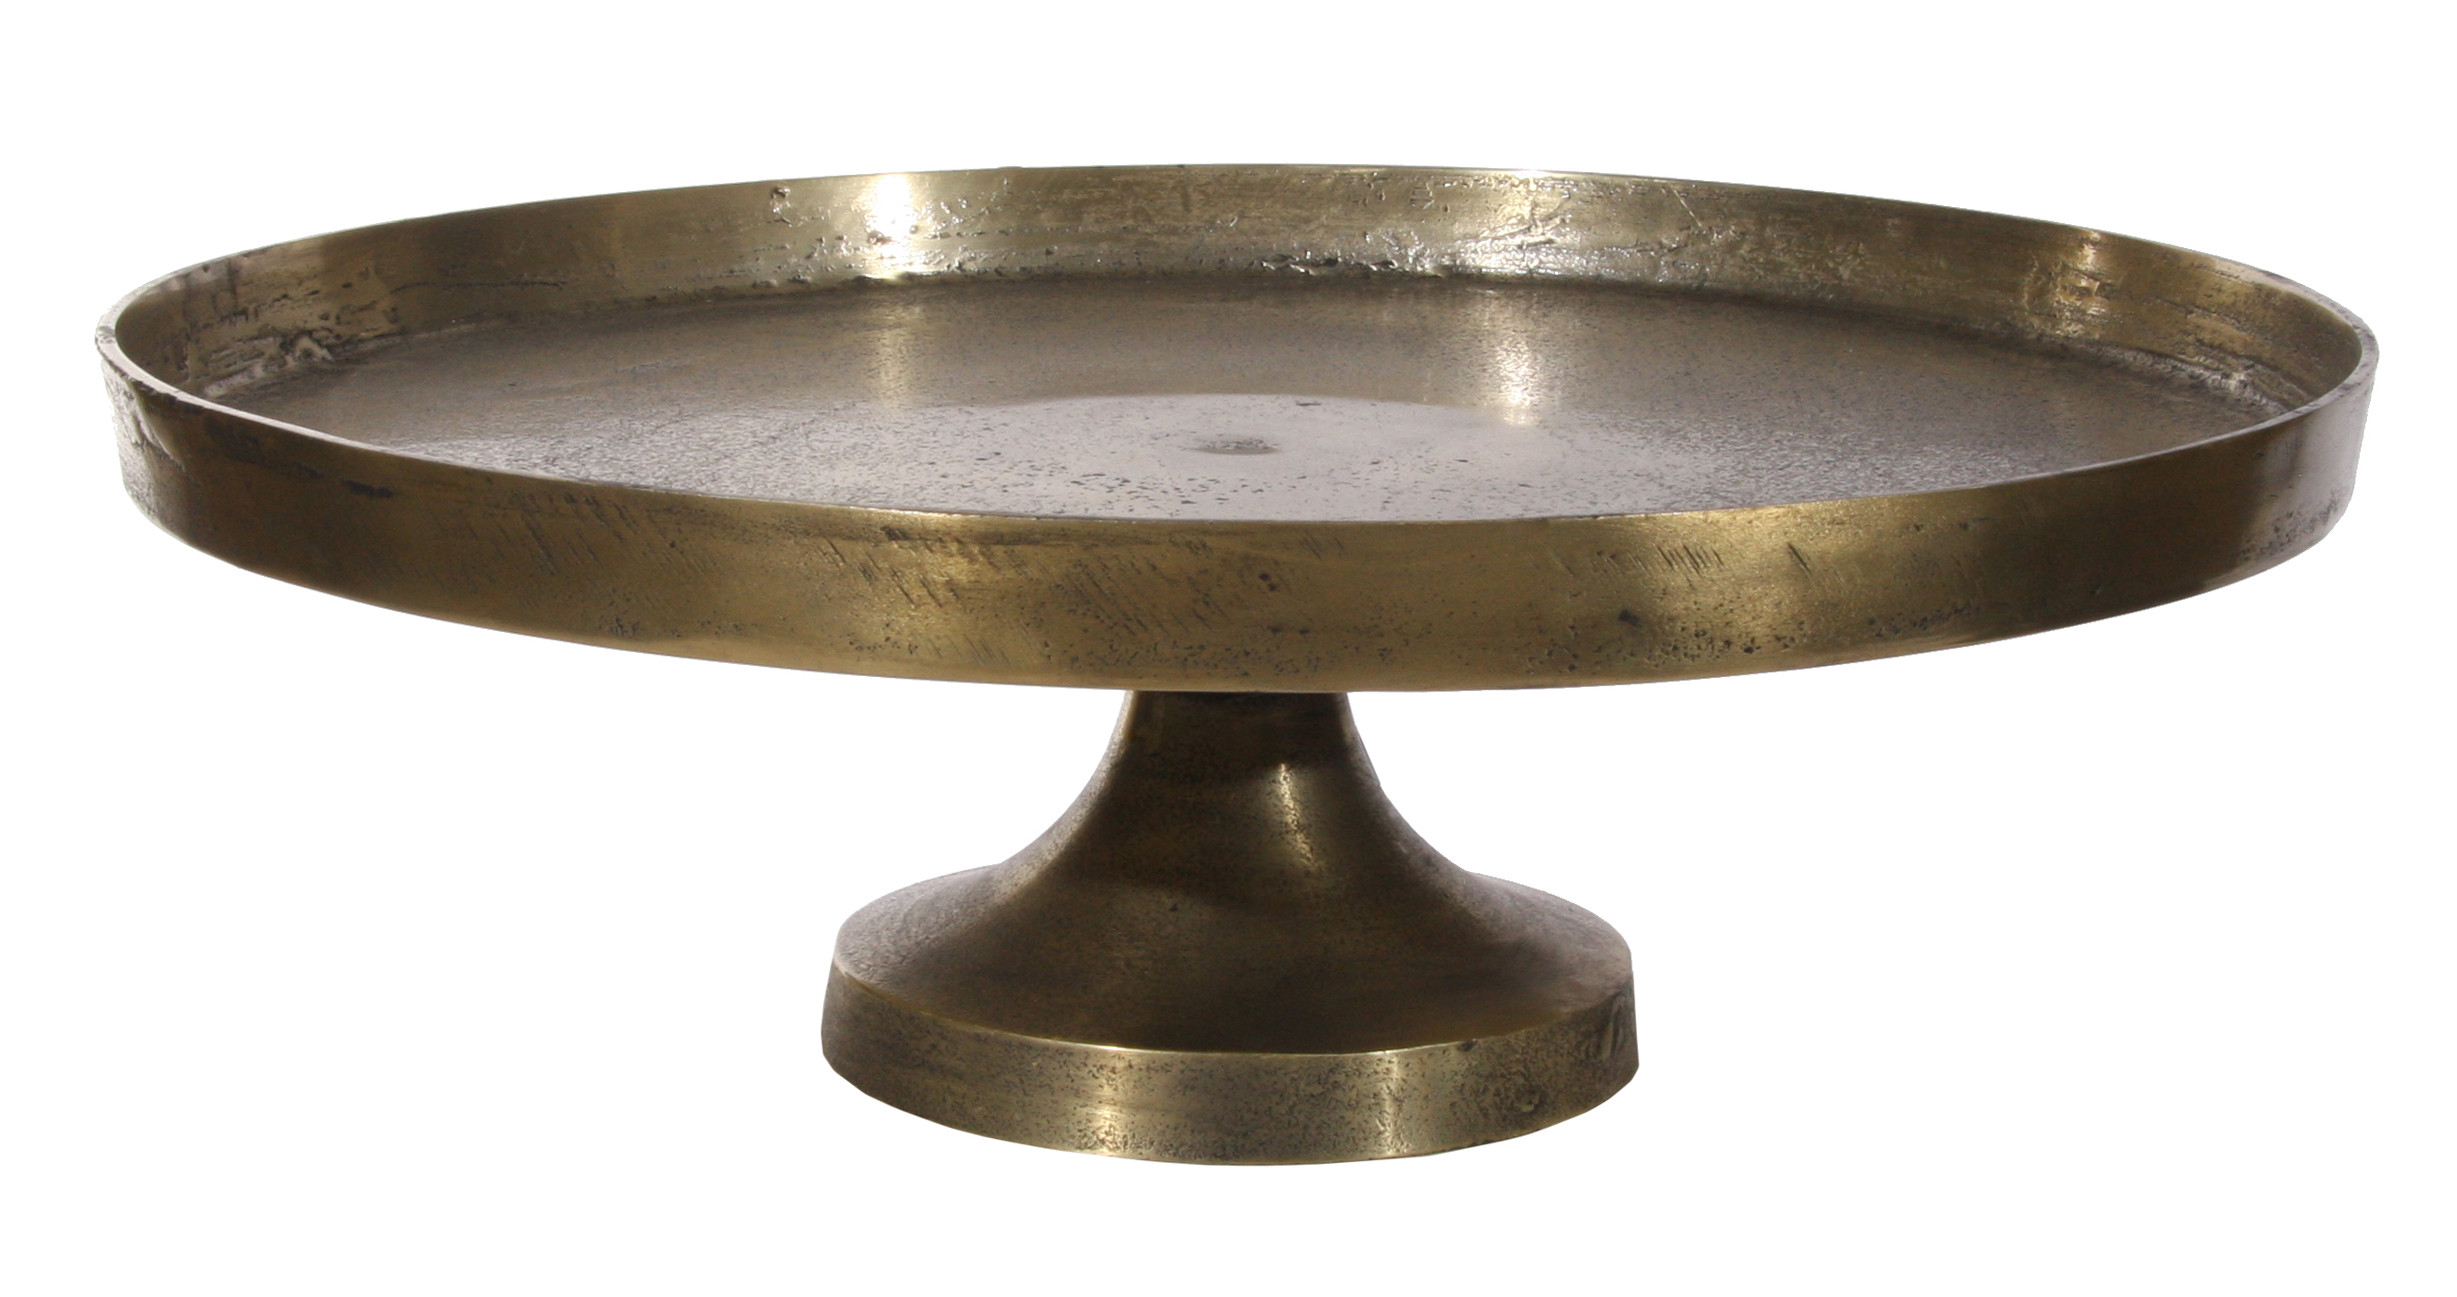 Metal plate on base antique gold 50cm